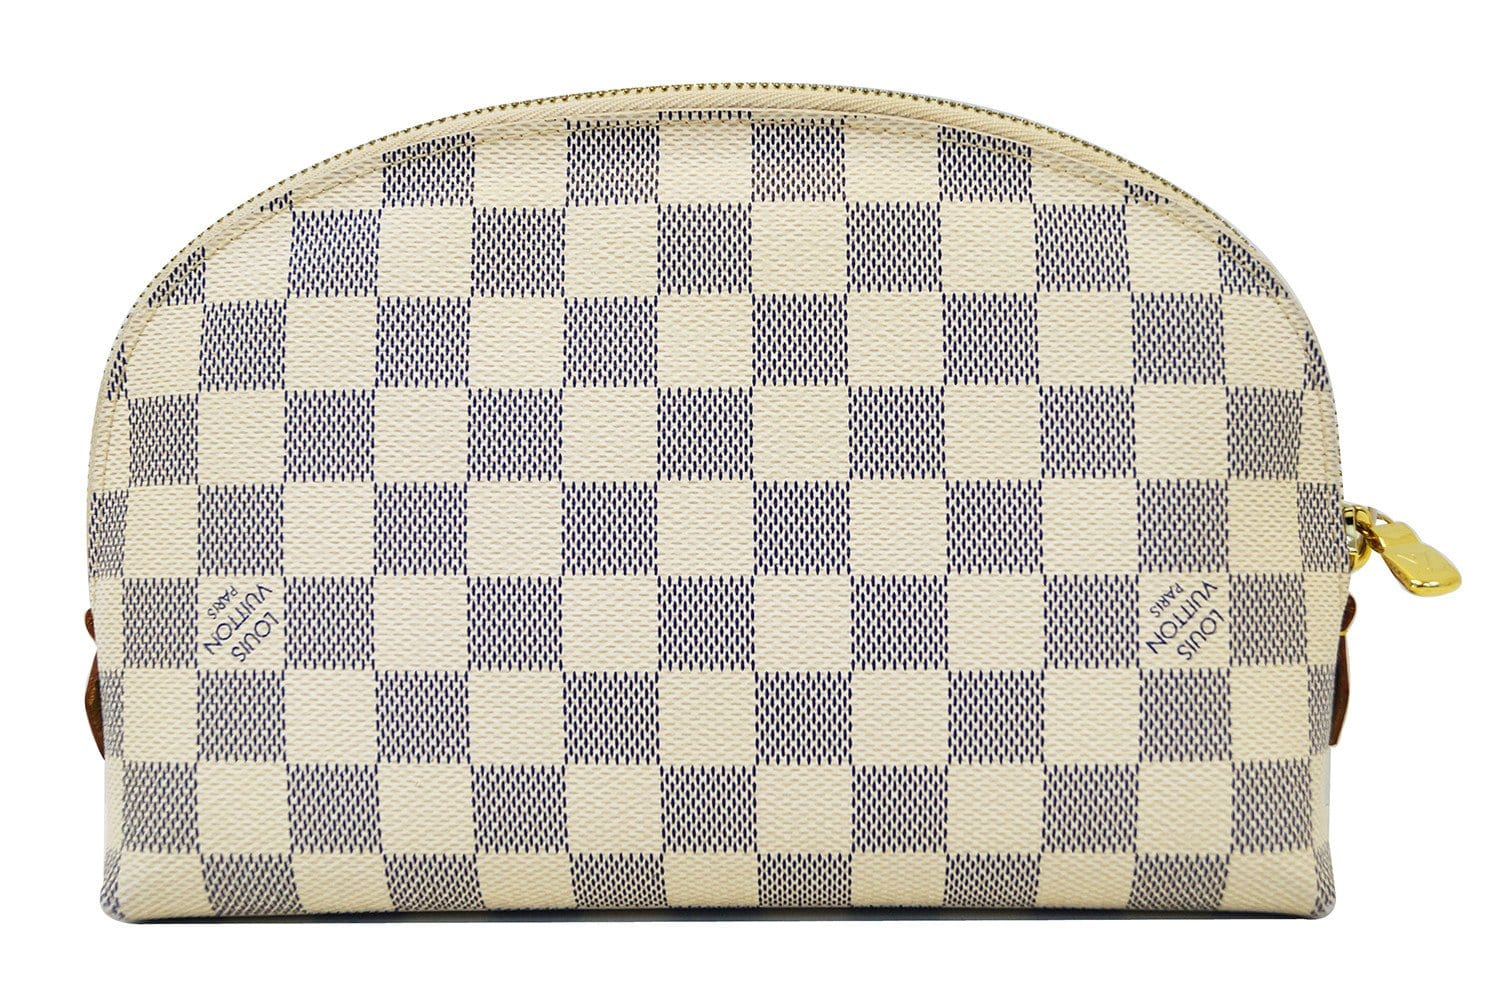 39a880a94d92 LOUIS VUITTON Damier Azur Pochette GM Cosmetic Pouch - Final Call